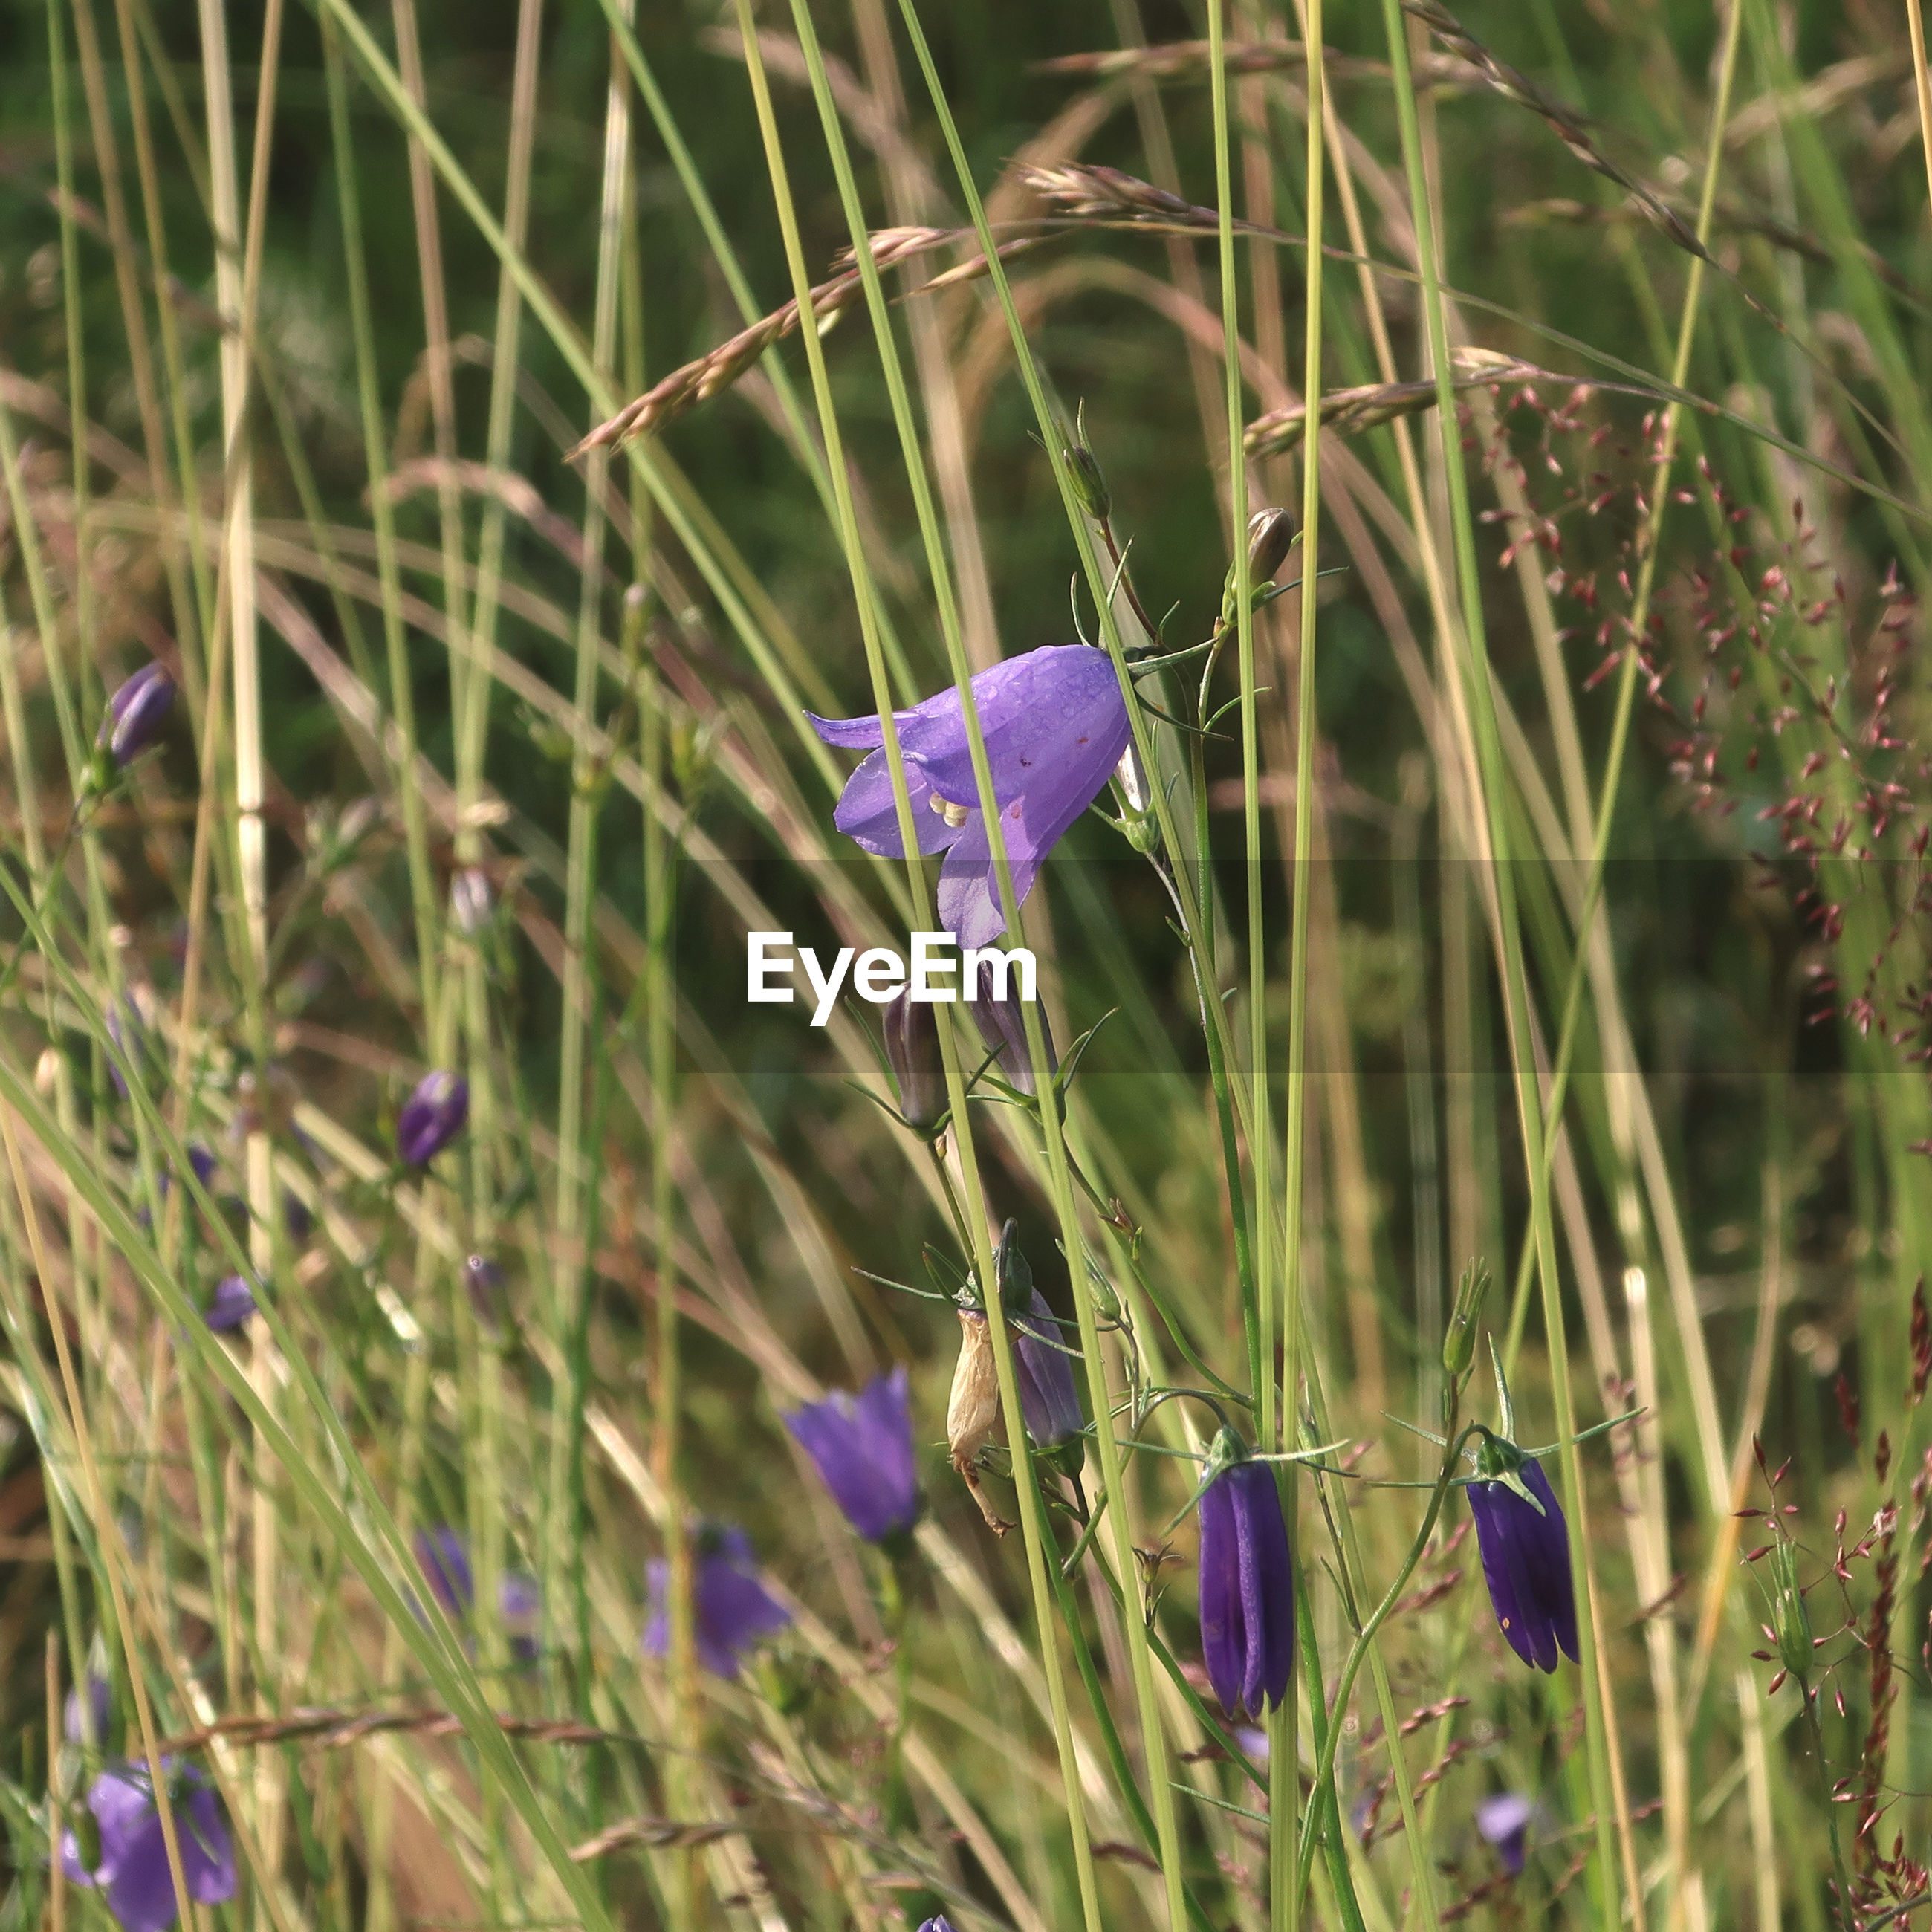 plant, flower, flowering plant, purple, beauty in nature, grass, prairie, growth, nature, meadow, freshness, fragility, close-up, no people, field, land, petal, wildflower, day, focus on foreground, flower head, outdoors, harebell, inflorescence, springtime, green, selective focus, lavender, iris